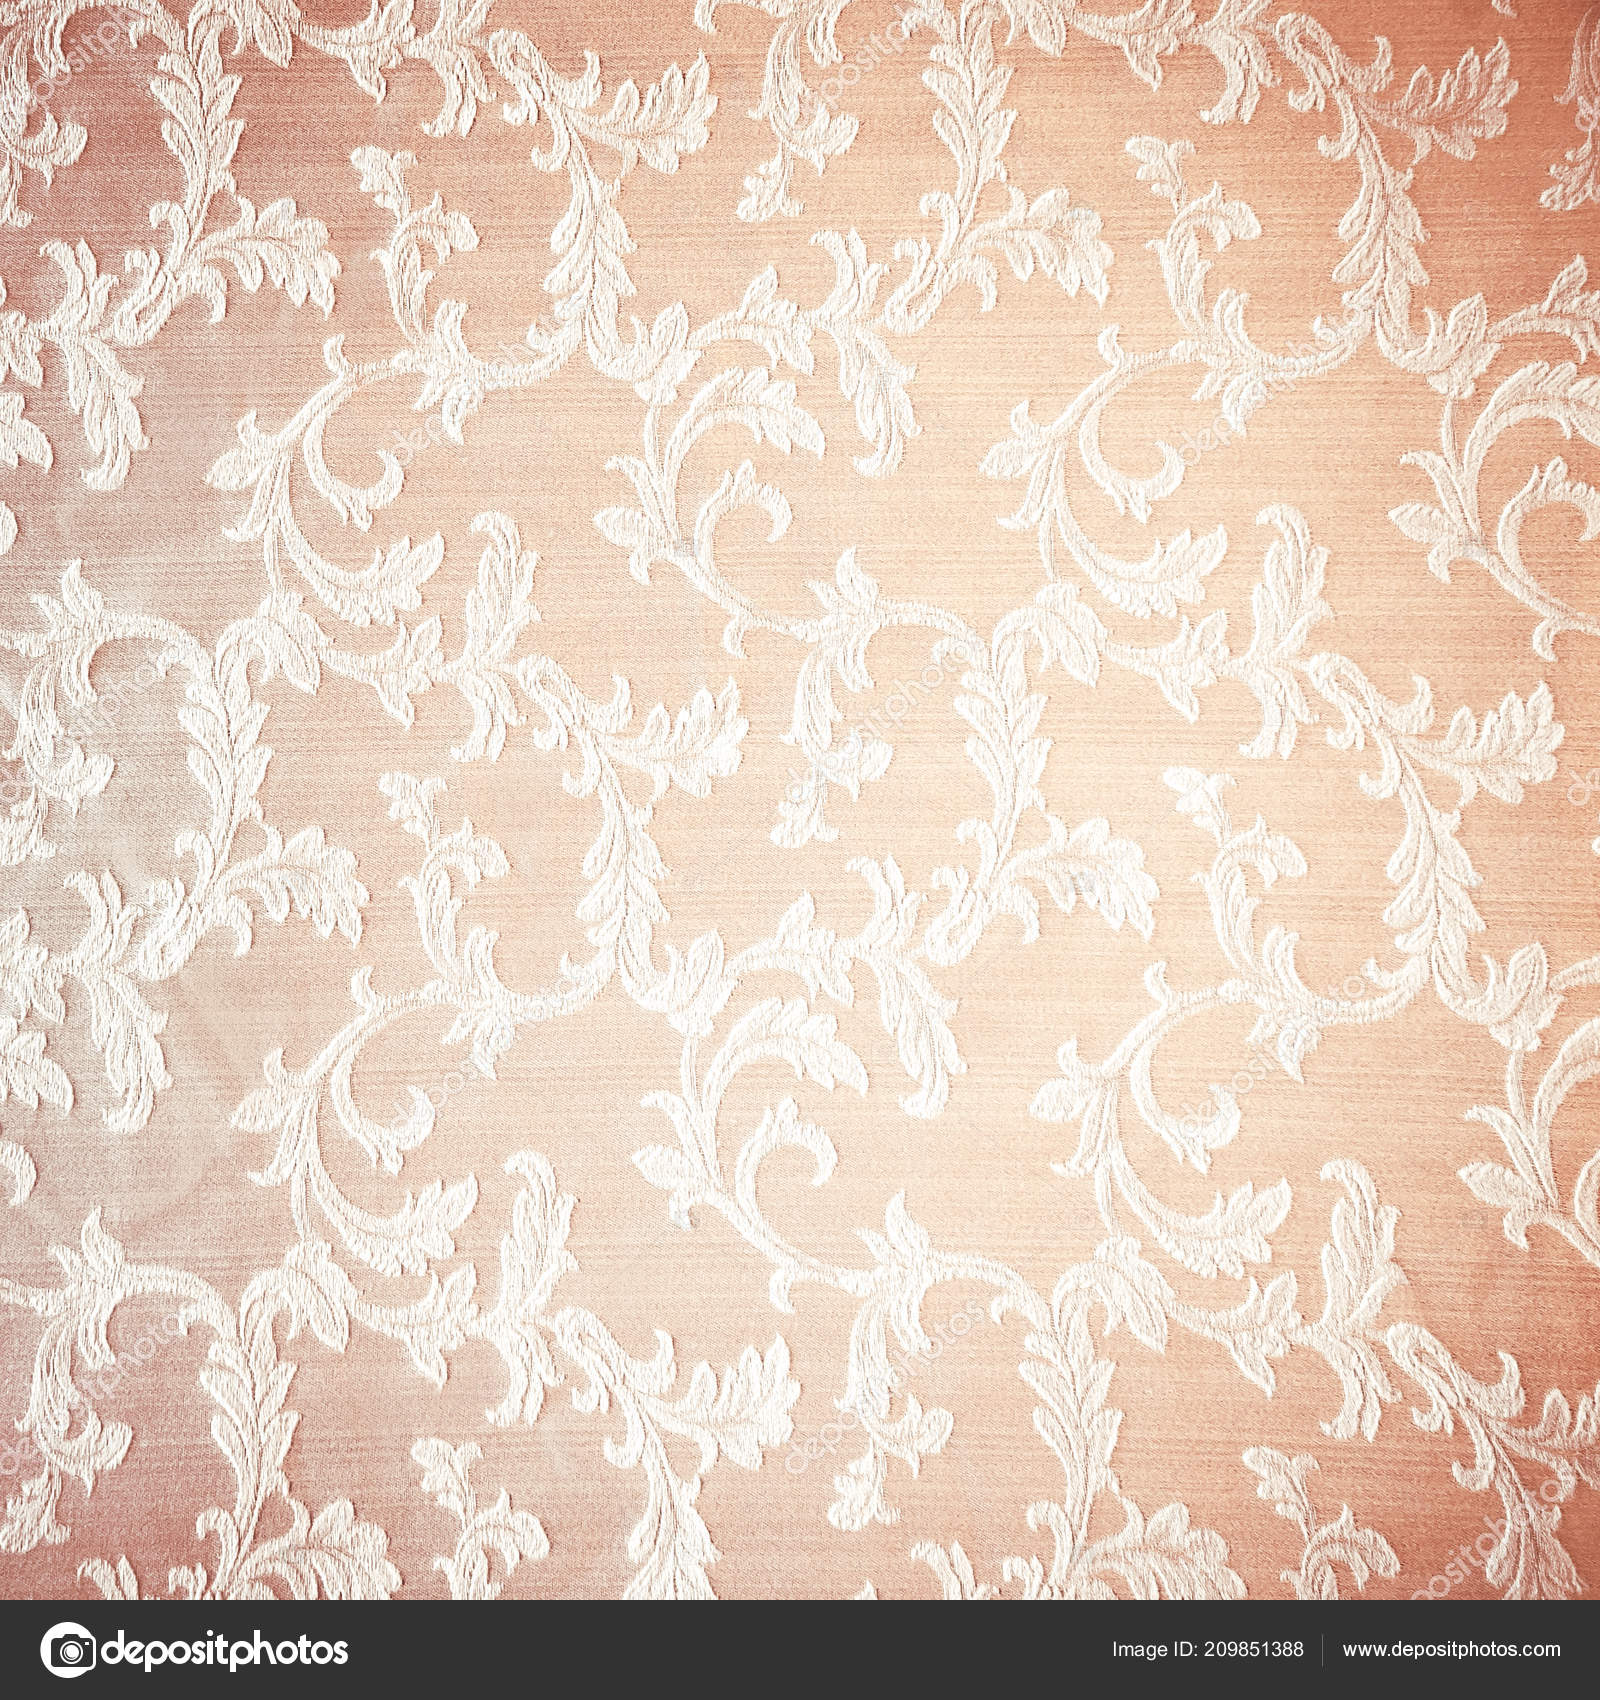 Retro Floral Curtains Background Abstract Beige Textured Wallpaper